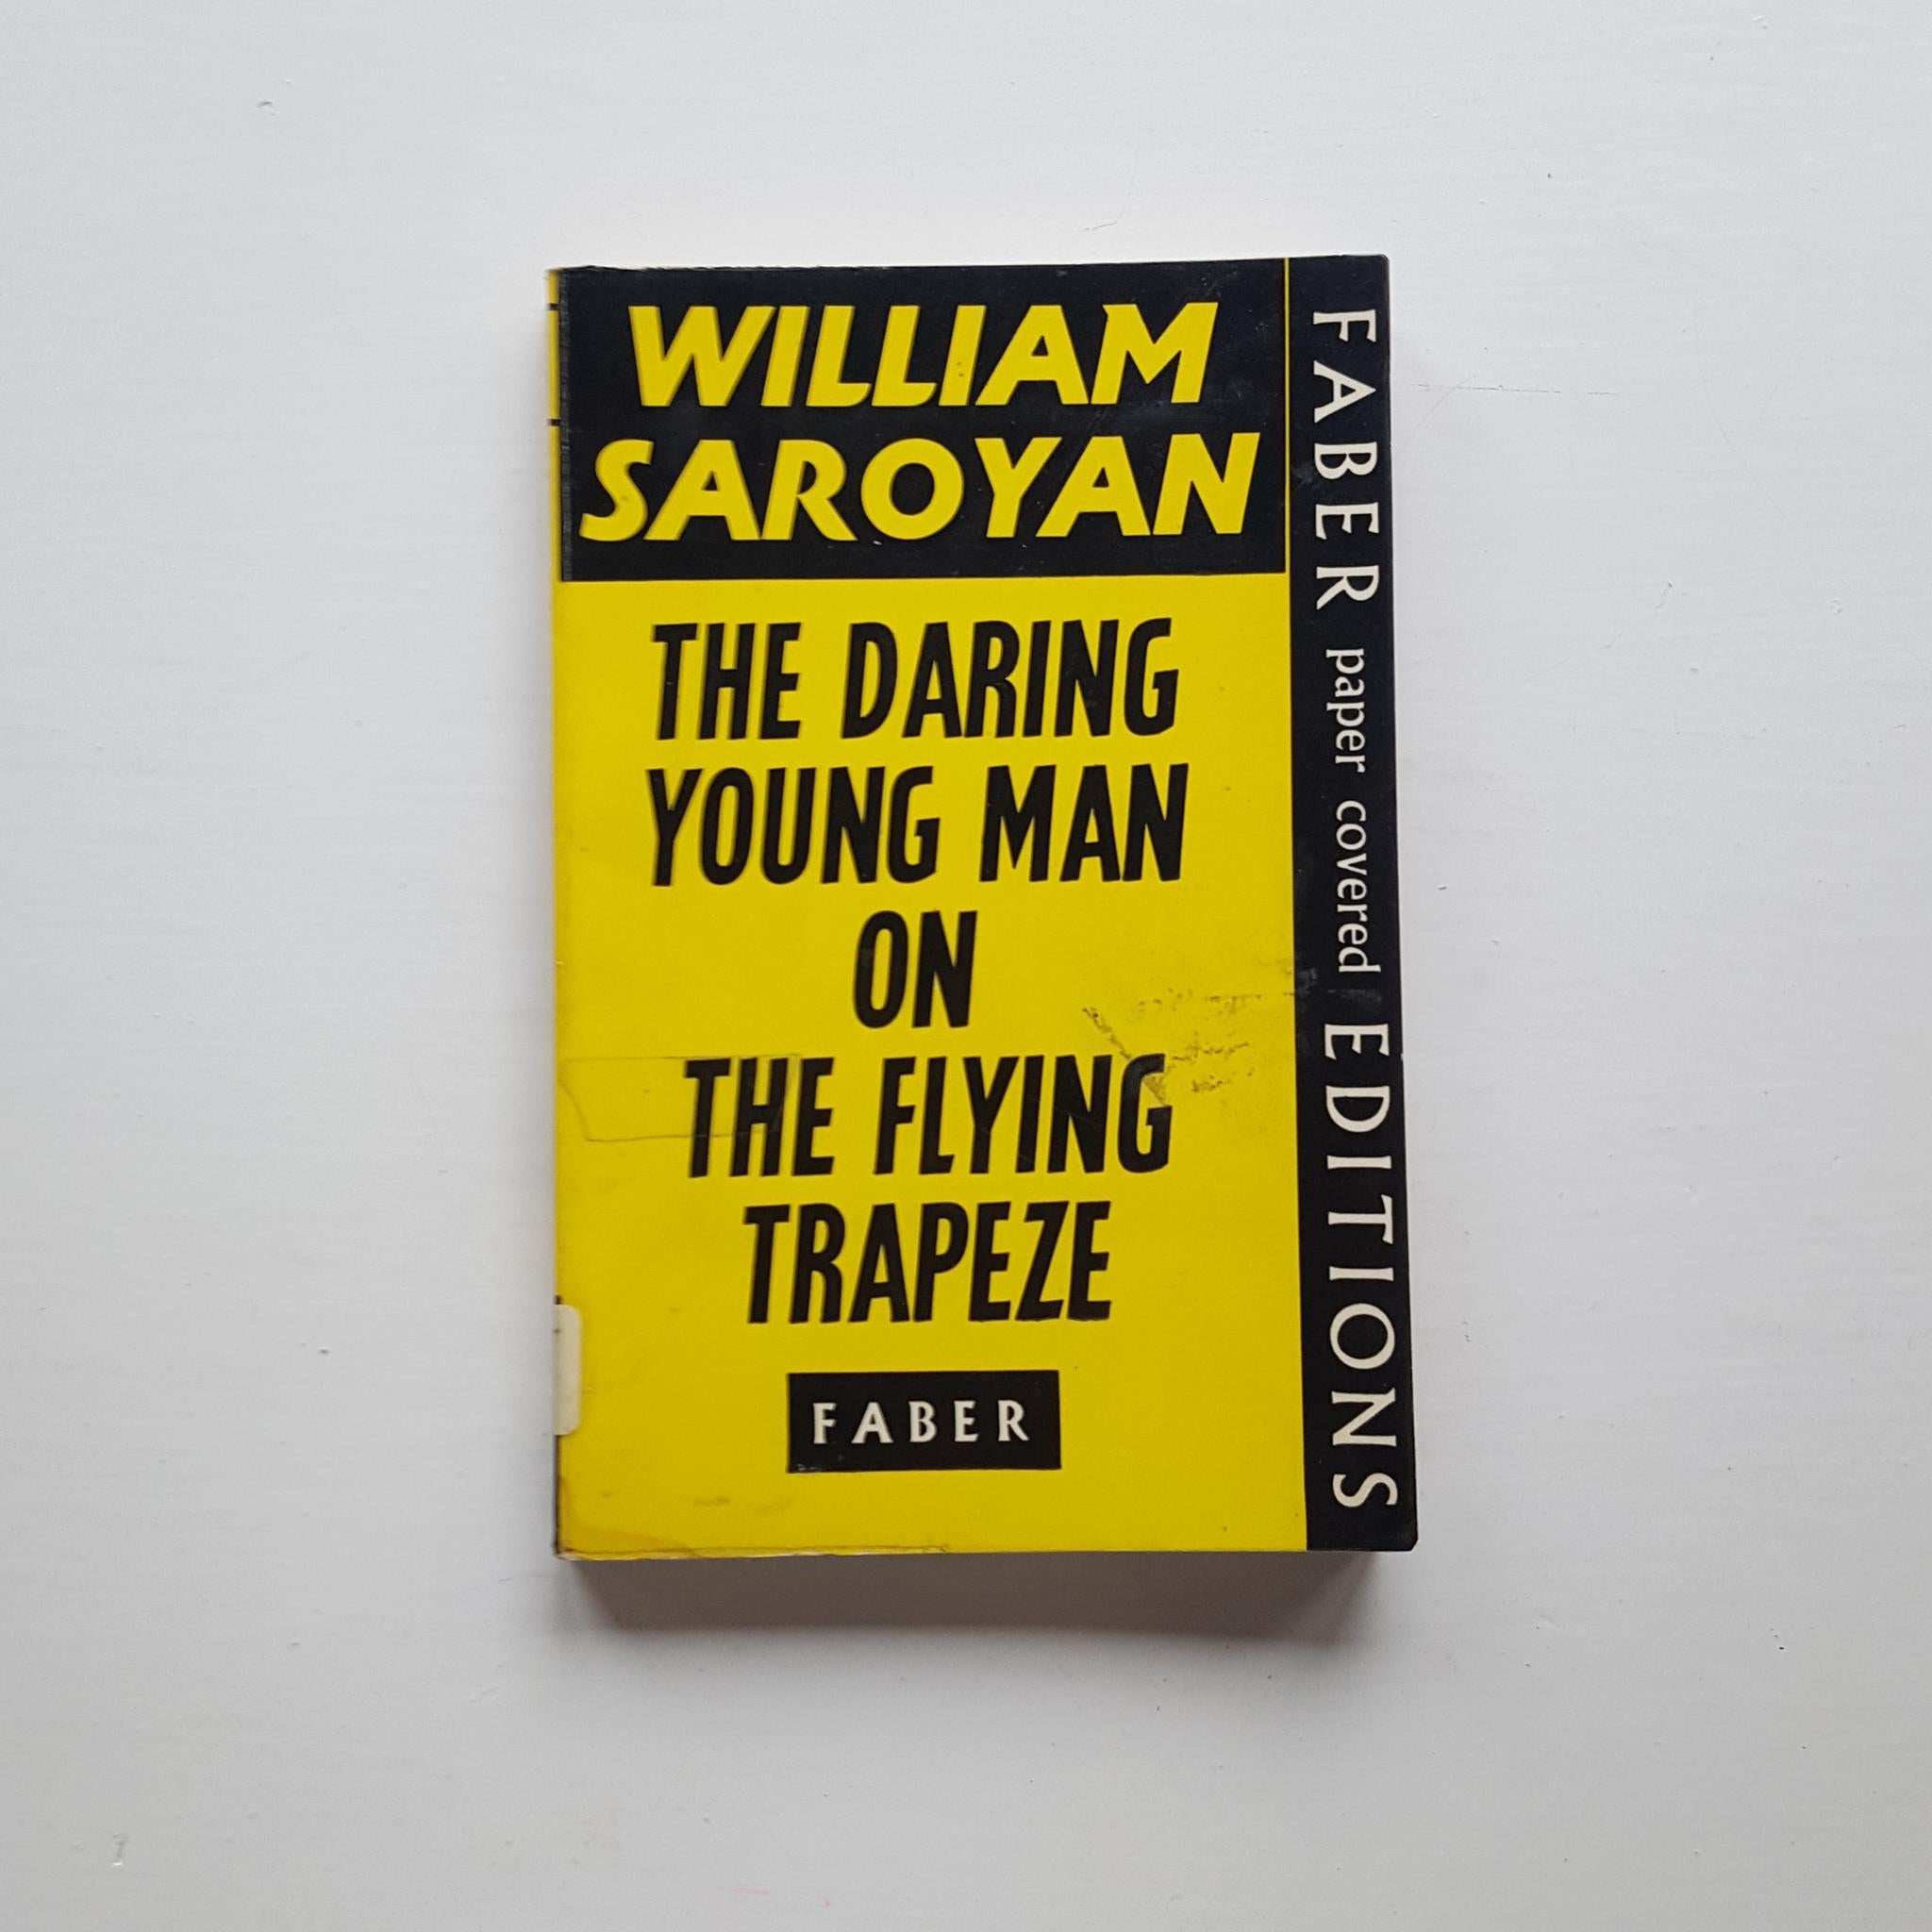 The Daring Young Man on The Flying Trapeze by William Saroyan